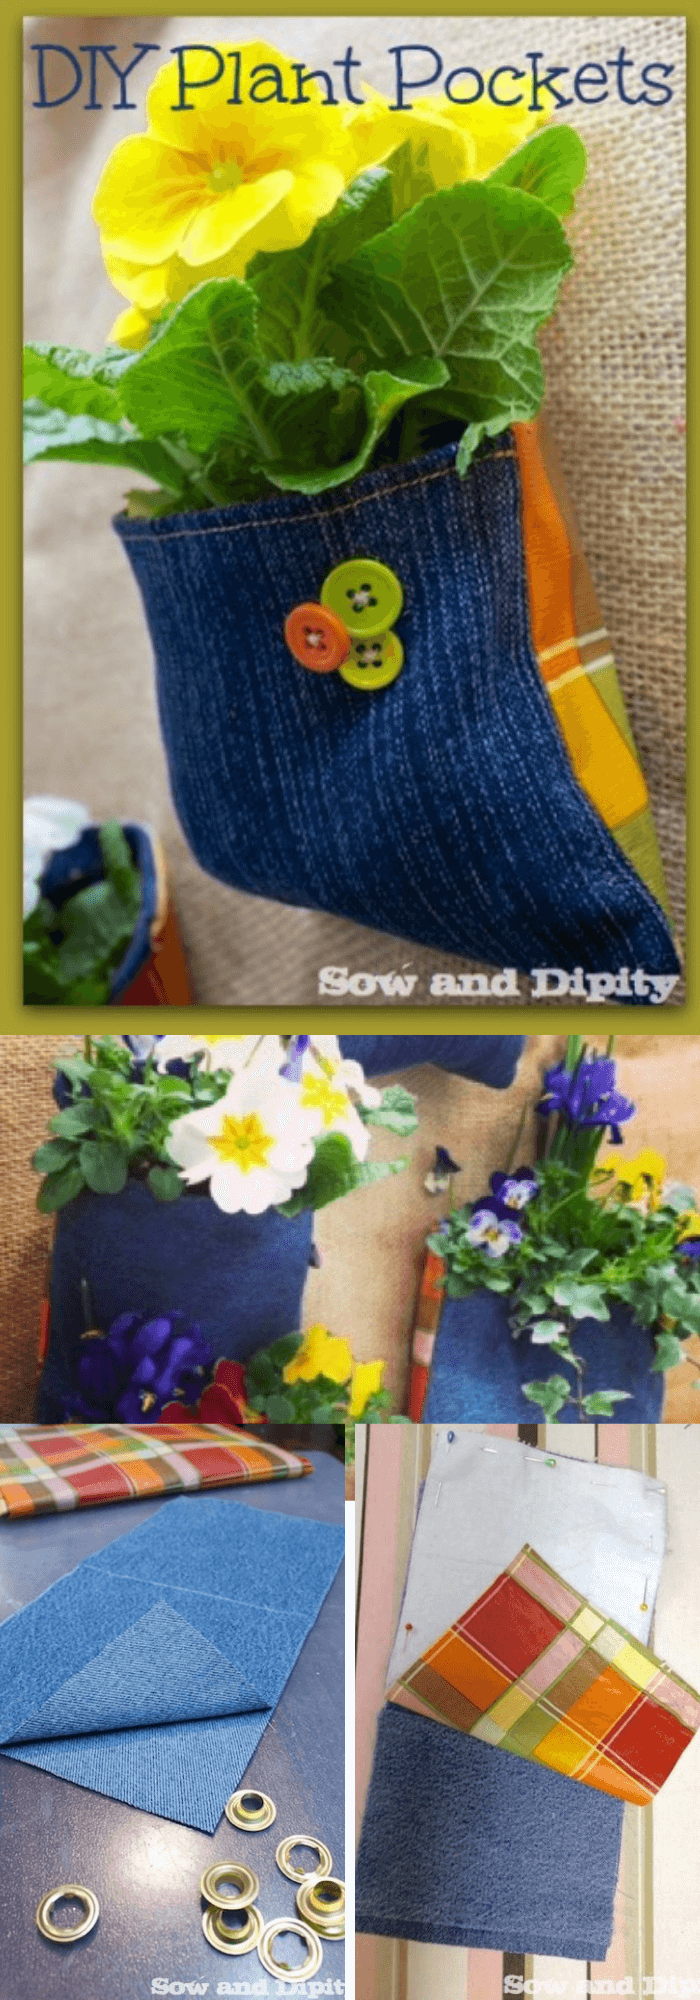 DIY Plant Pockets with Recycled Denim